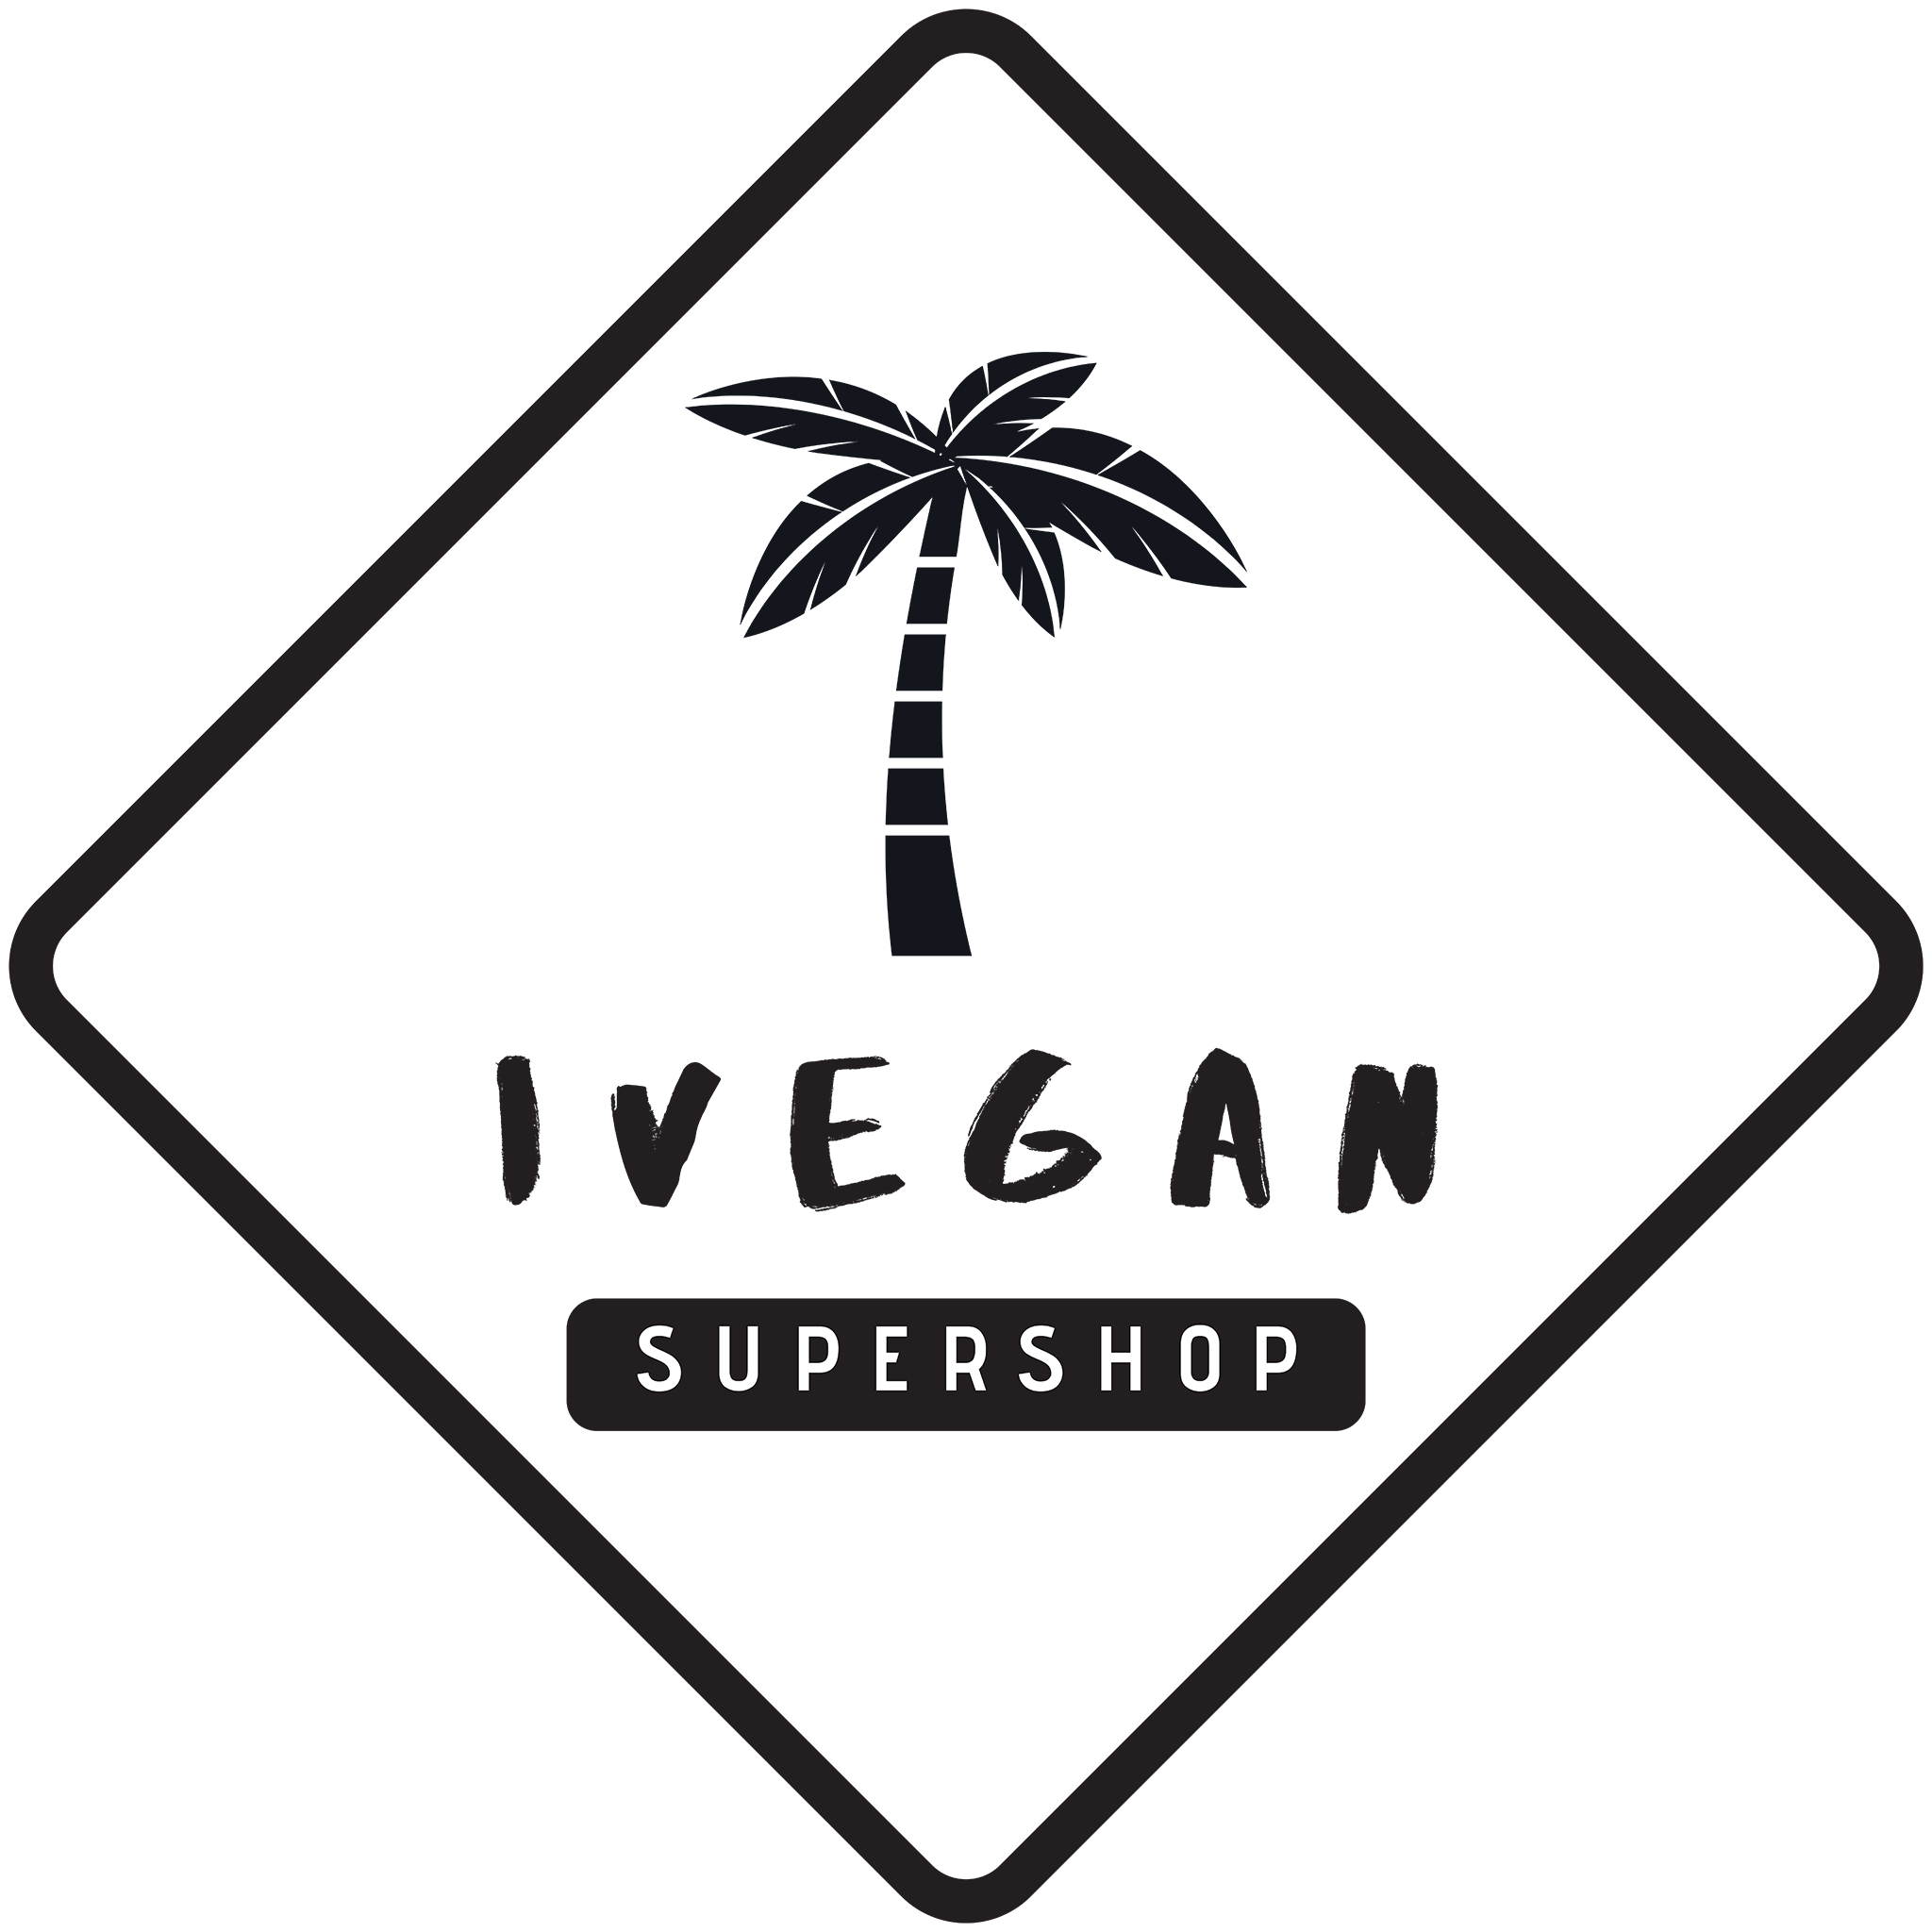 iVegan Super Shop